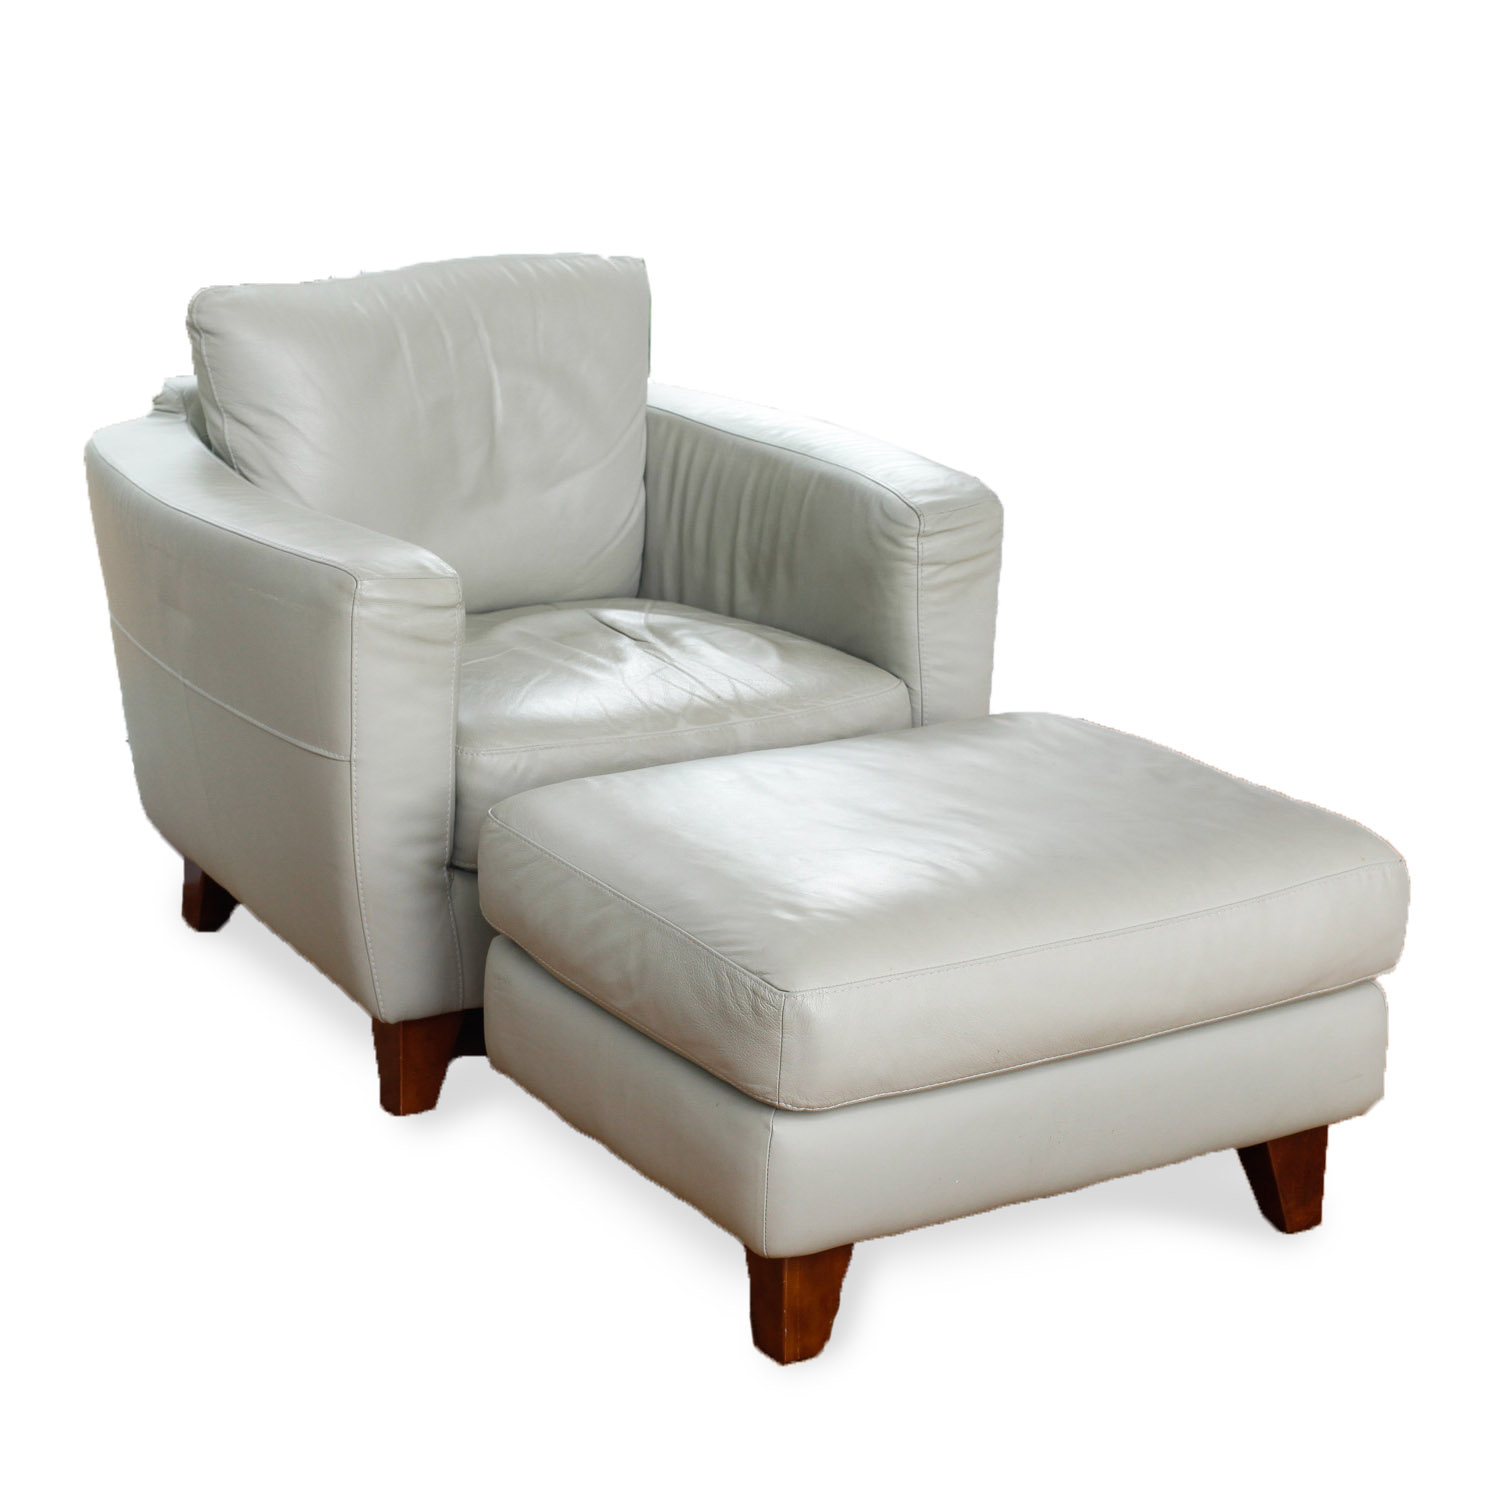 italsofa leather chair sofa sleeper and ottoman ebth